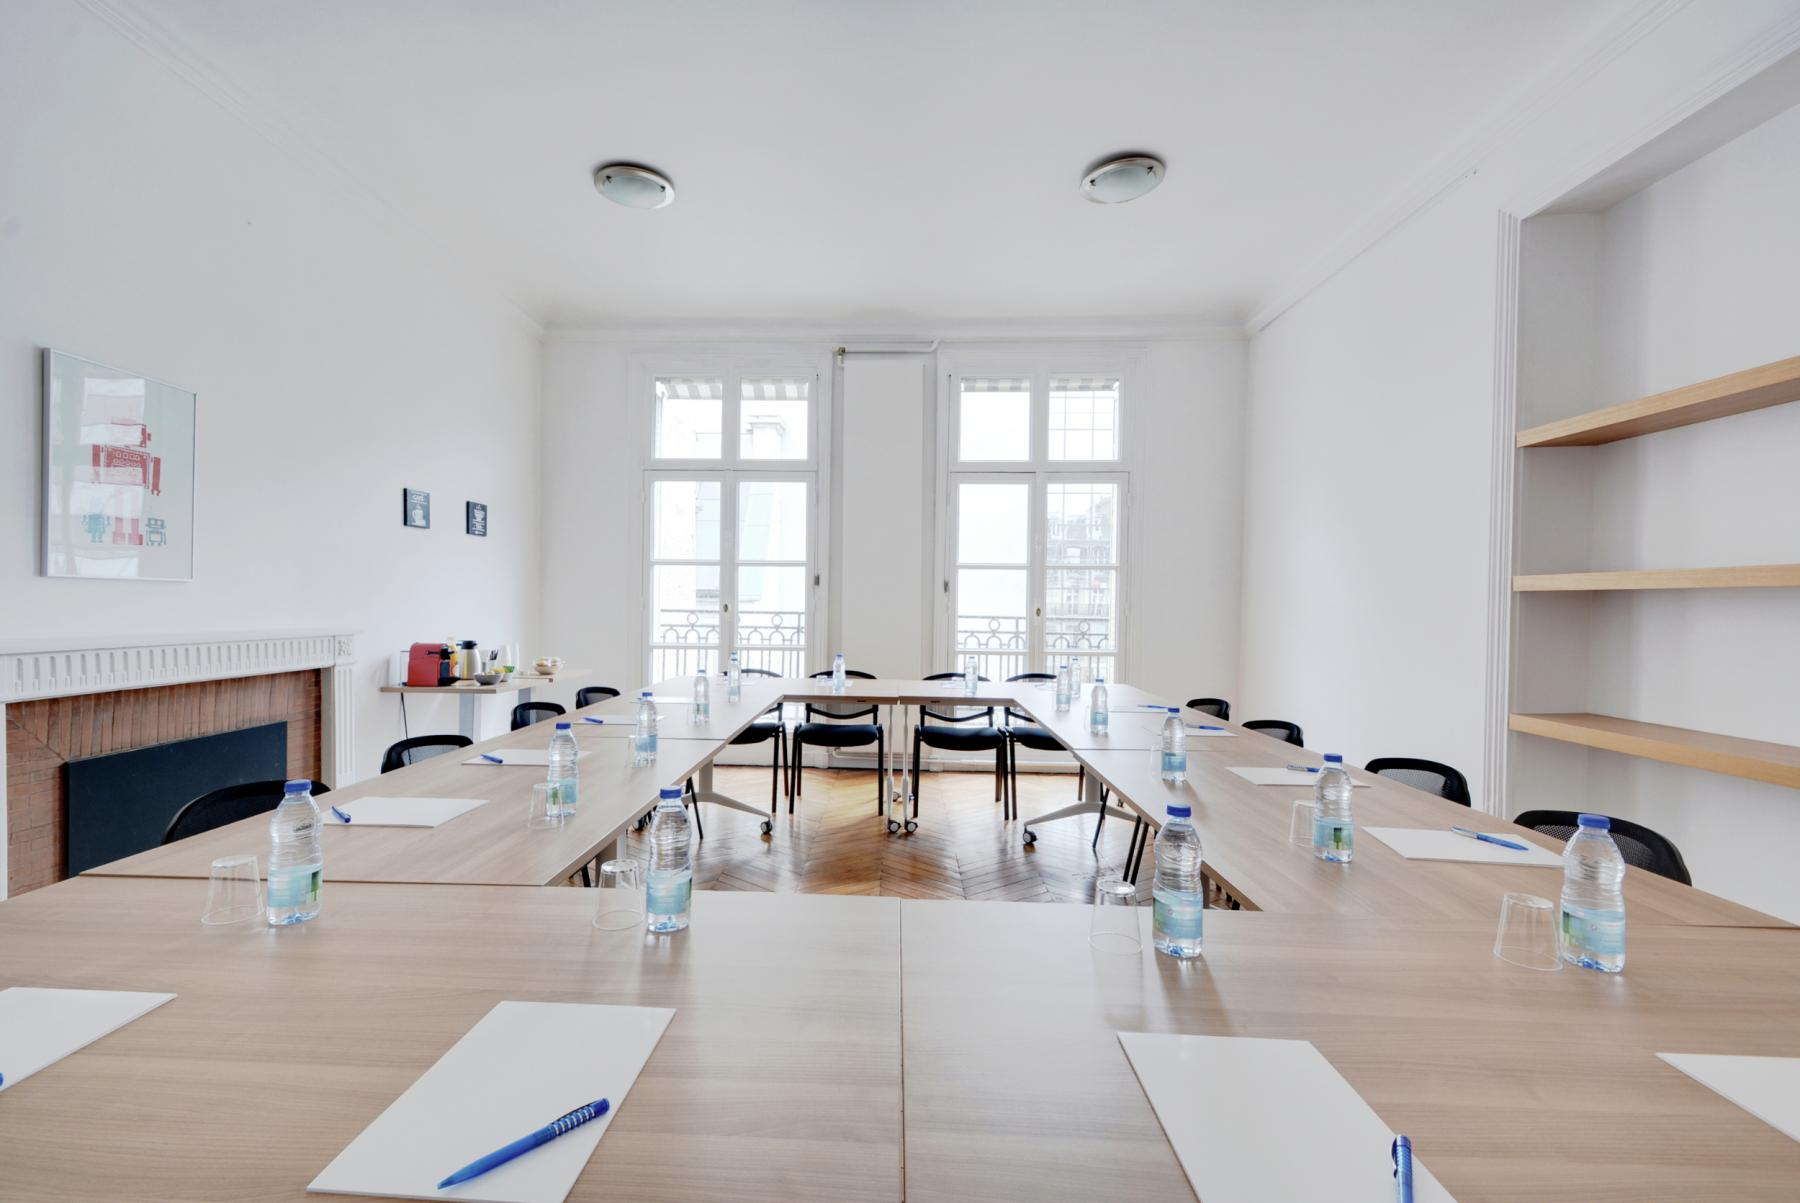 Meeting room with large windows to make the most of natural light at Rue du 4 Septembre